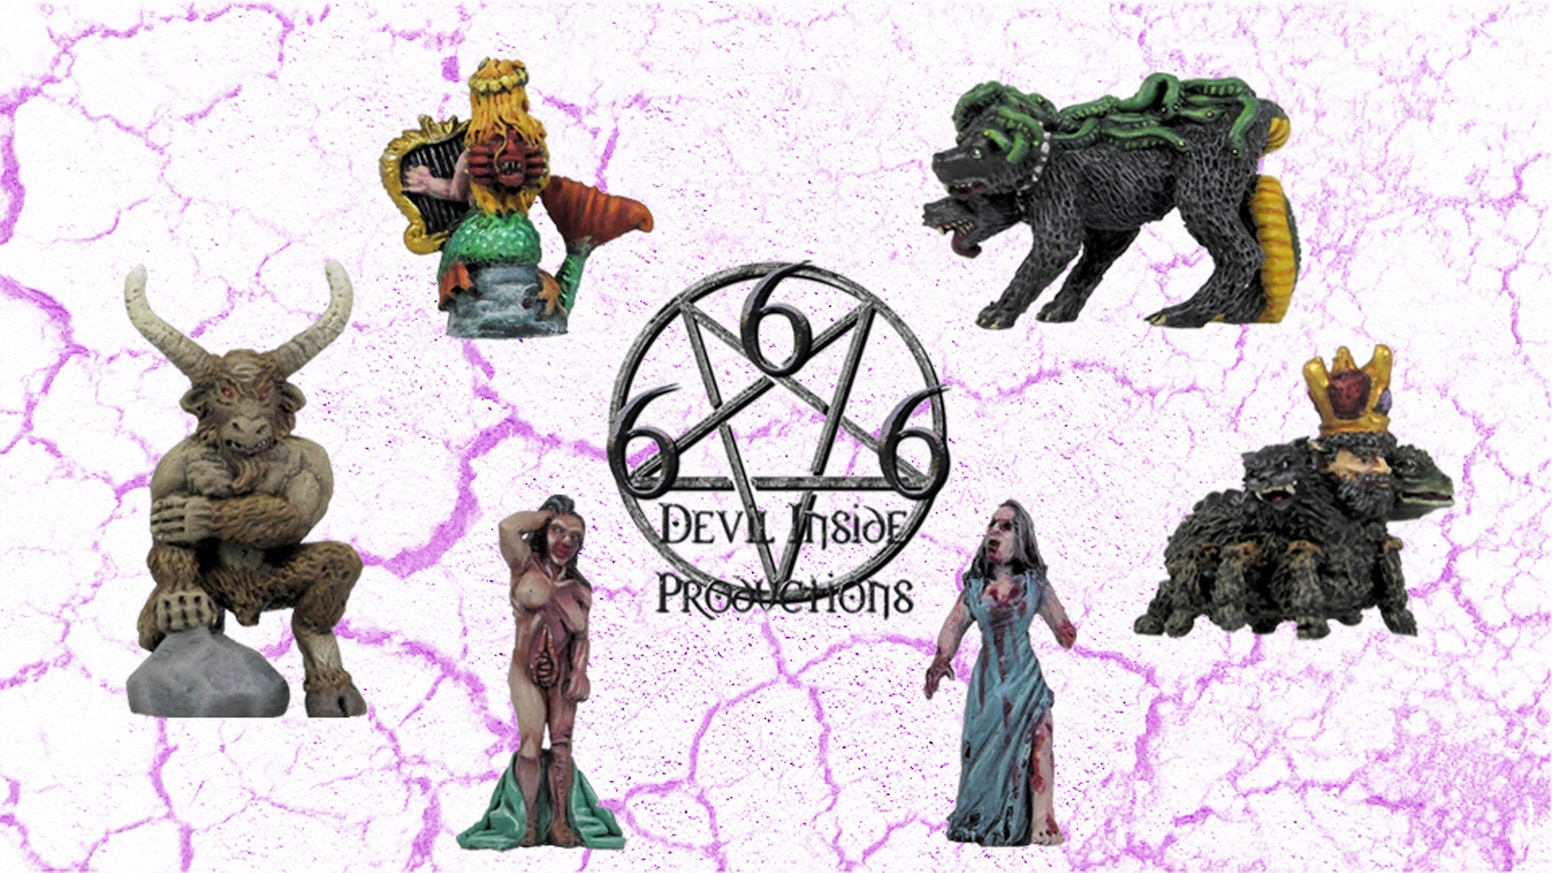 Third Wave of more weird and wonderful Demonic little beasties in miniature form.